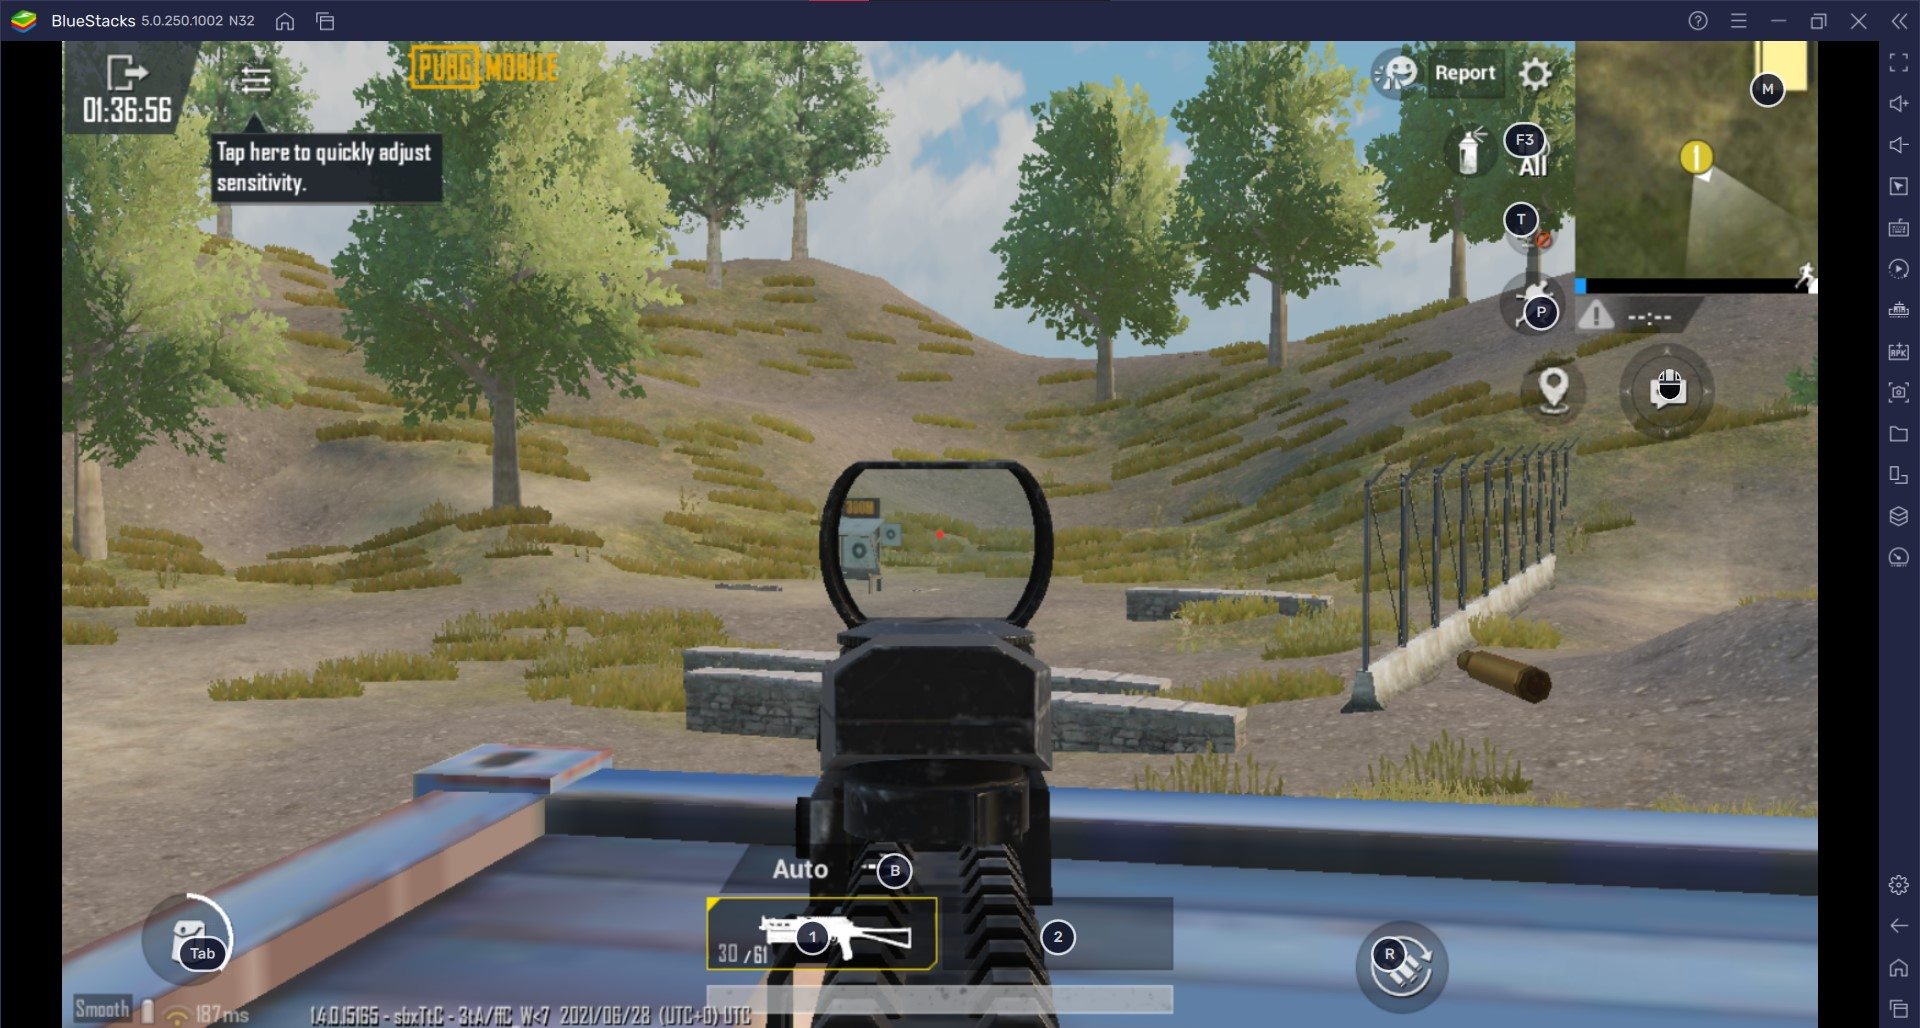 Dominating the Deathmatch: Guide to Team Deathmatch in PUBG Mobile